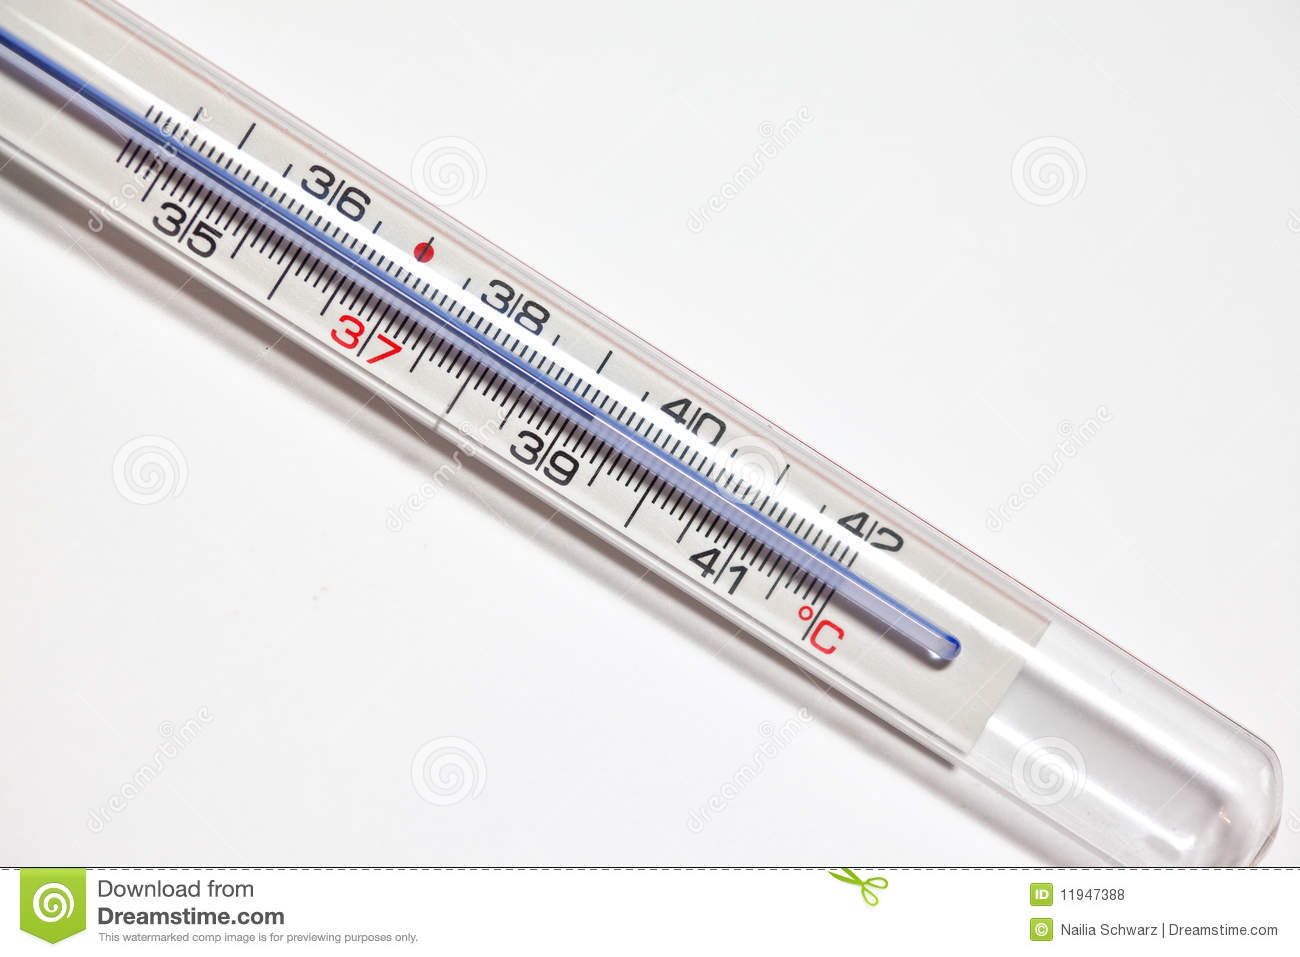 Fever Thermometer Stock Photo. Image Of Illness, Lifestyle